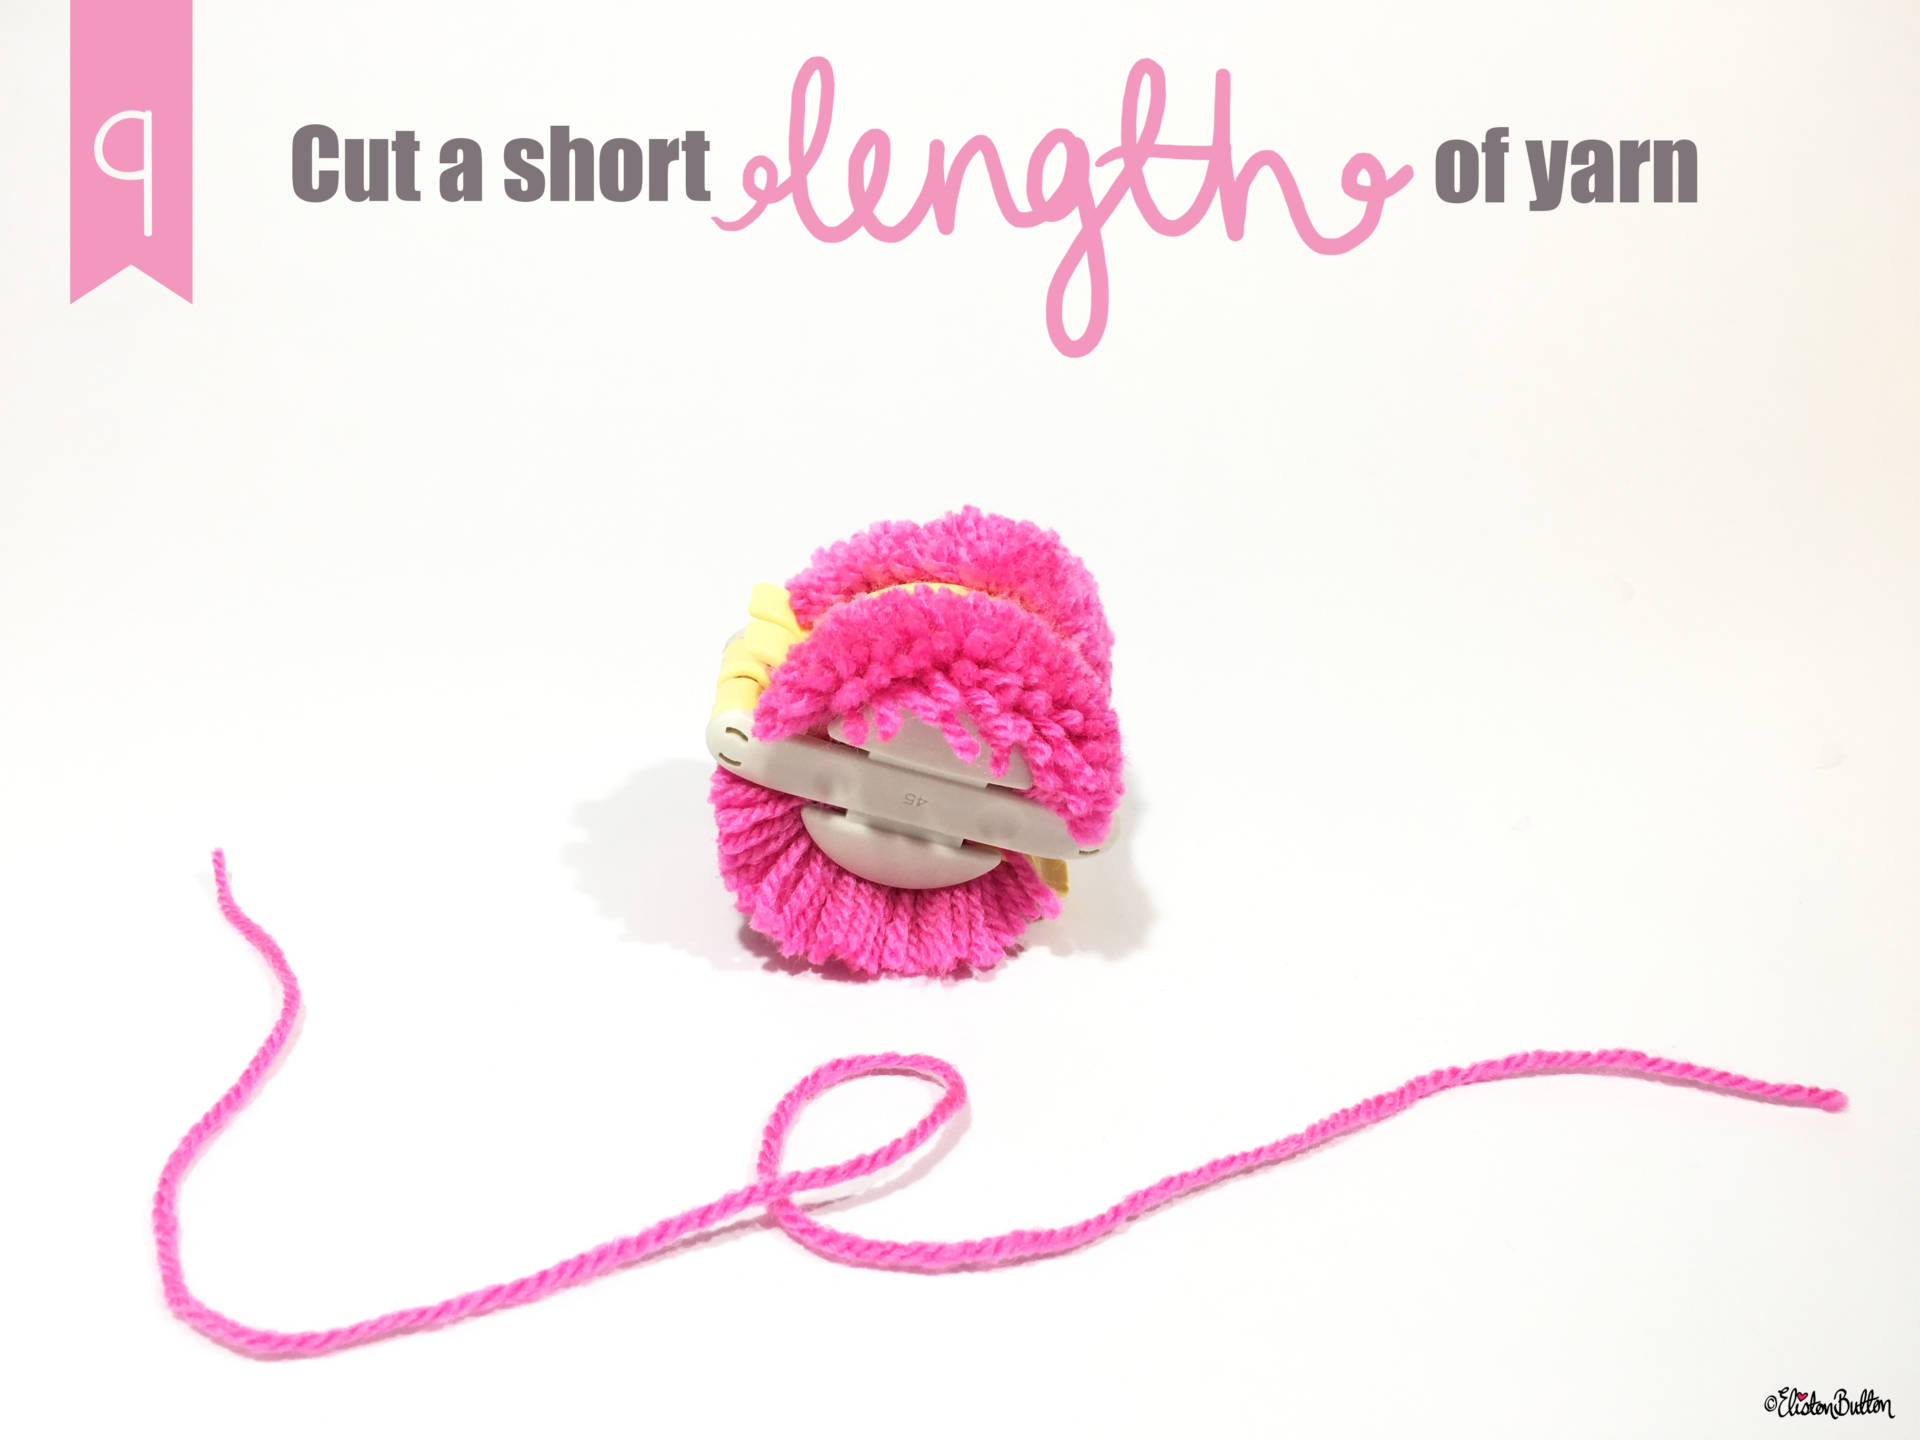 9. Cut a Short Length of Yarn - Tutorial Tuesday - Clover Pom Pom Maker at www.elistonbutton.com - Eliston Button - That Crafty Kid – Art, Design, Craft & Adventure.